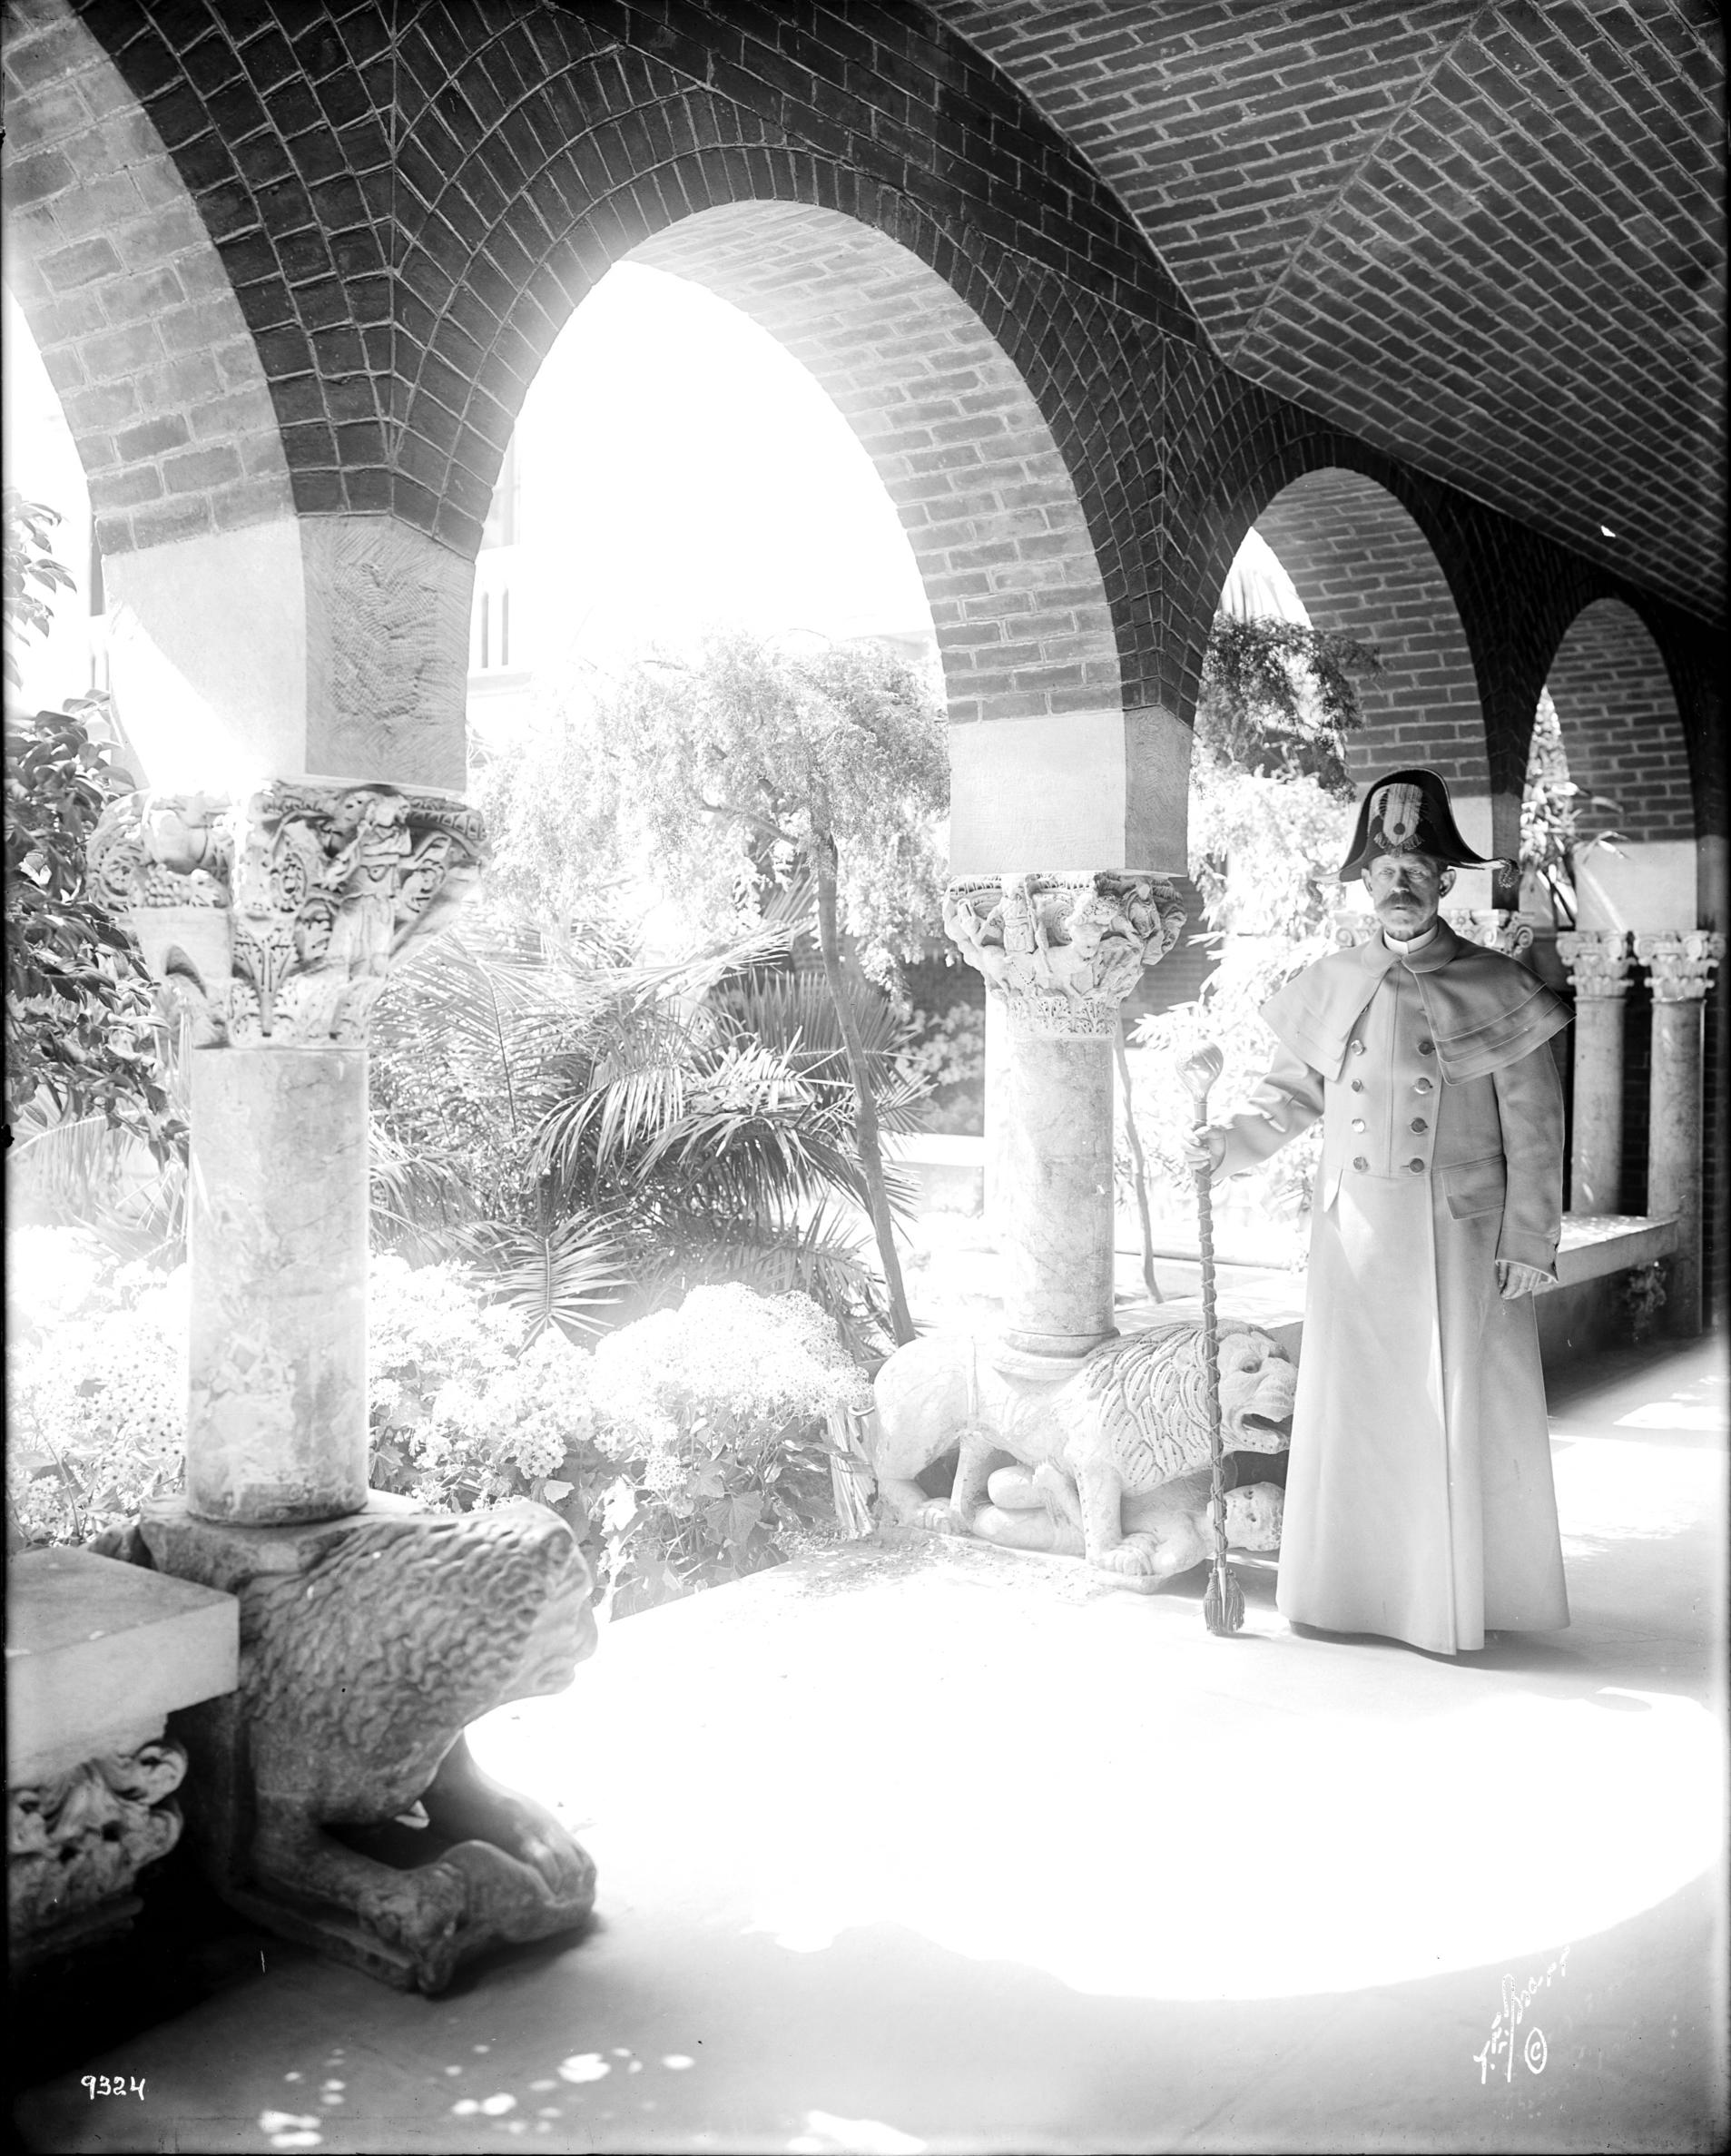 Thomas E. Marr and Son (active Boston, about 1875-1954), Teobaldo Travi in the North Cloister, Fenway Court, 1904